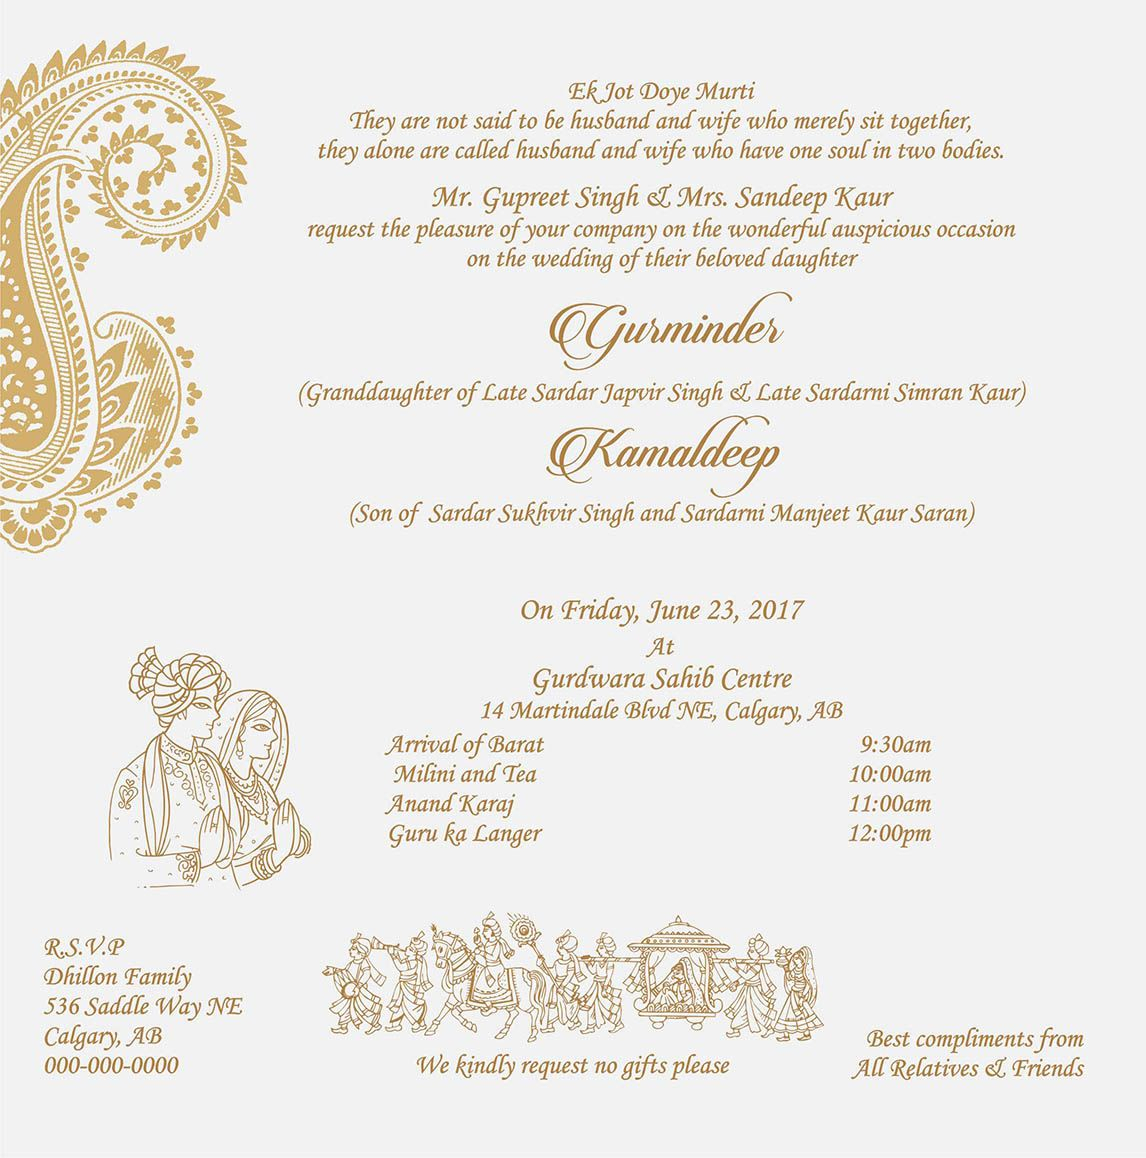 Sikh Wedding Invitations Wedding Invitation Wording For Sikh Wedding Ceremony Wedding